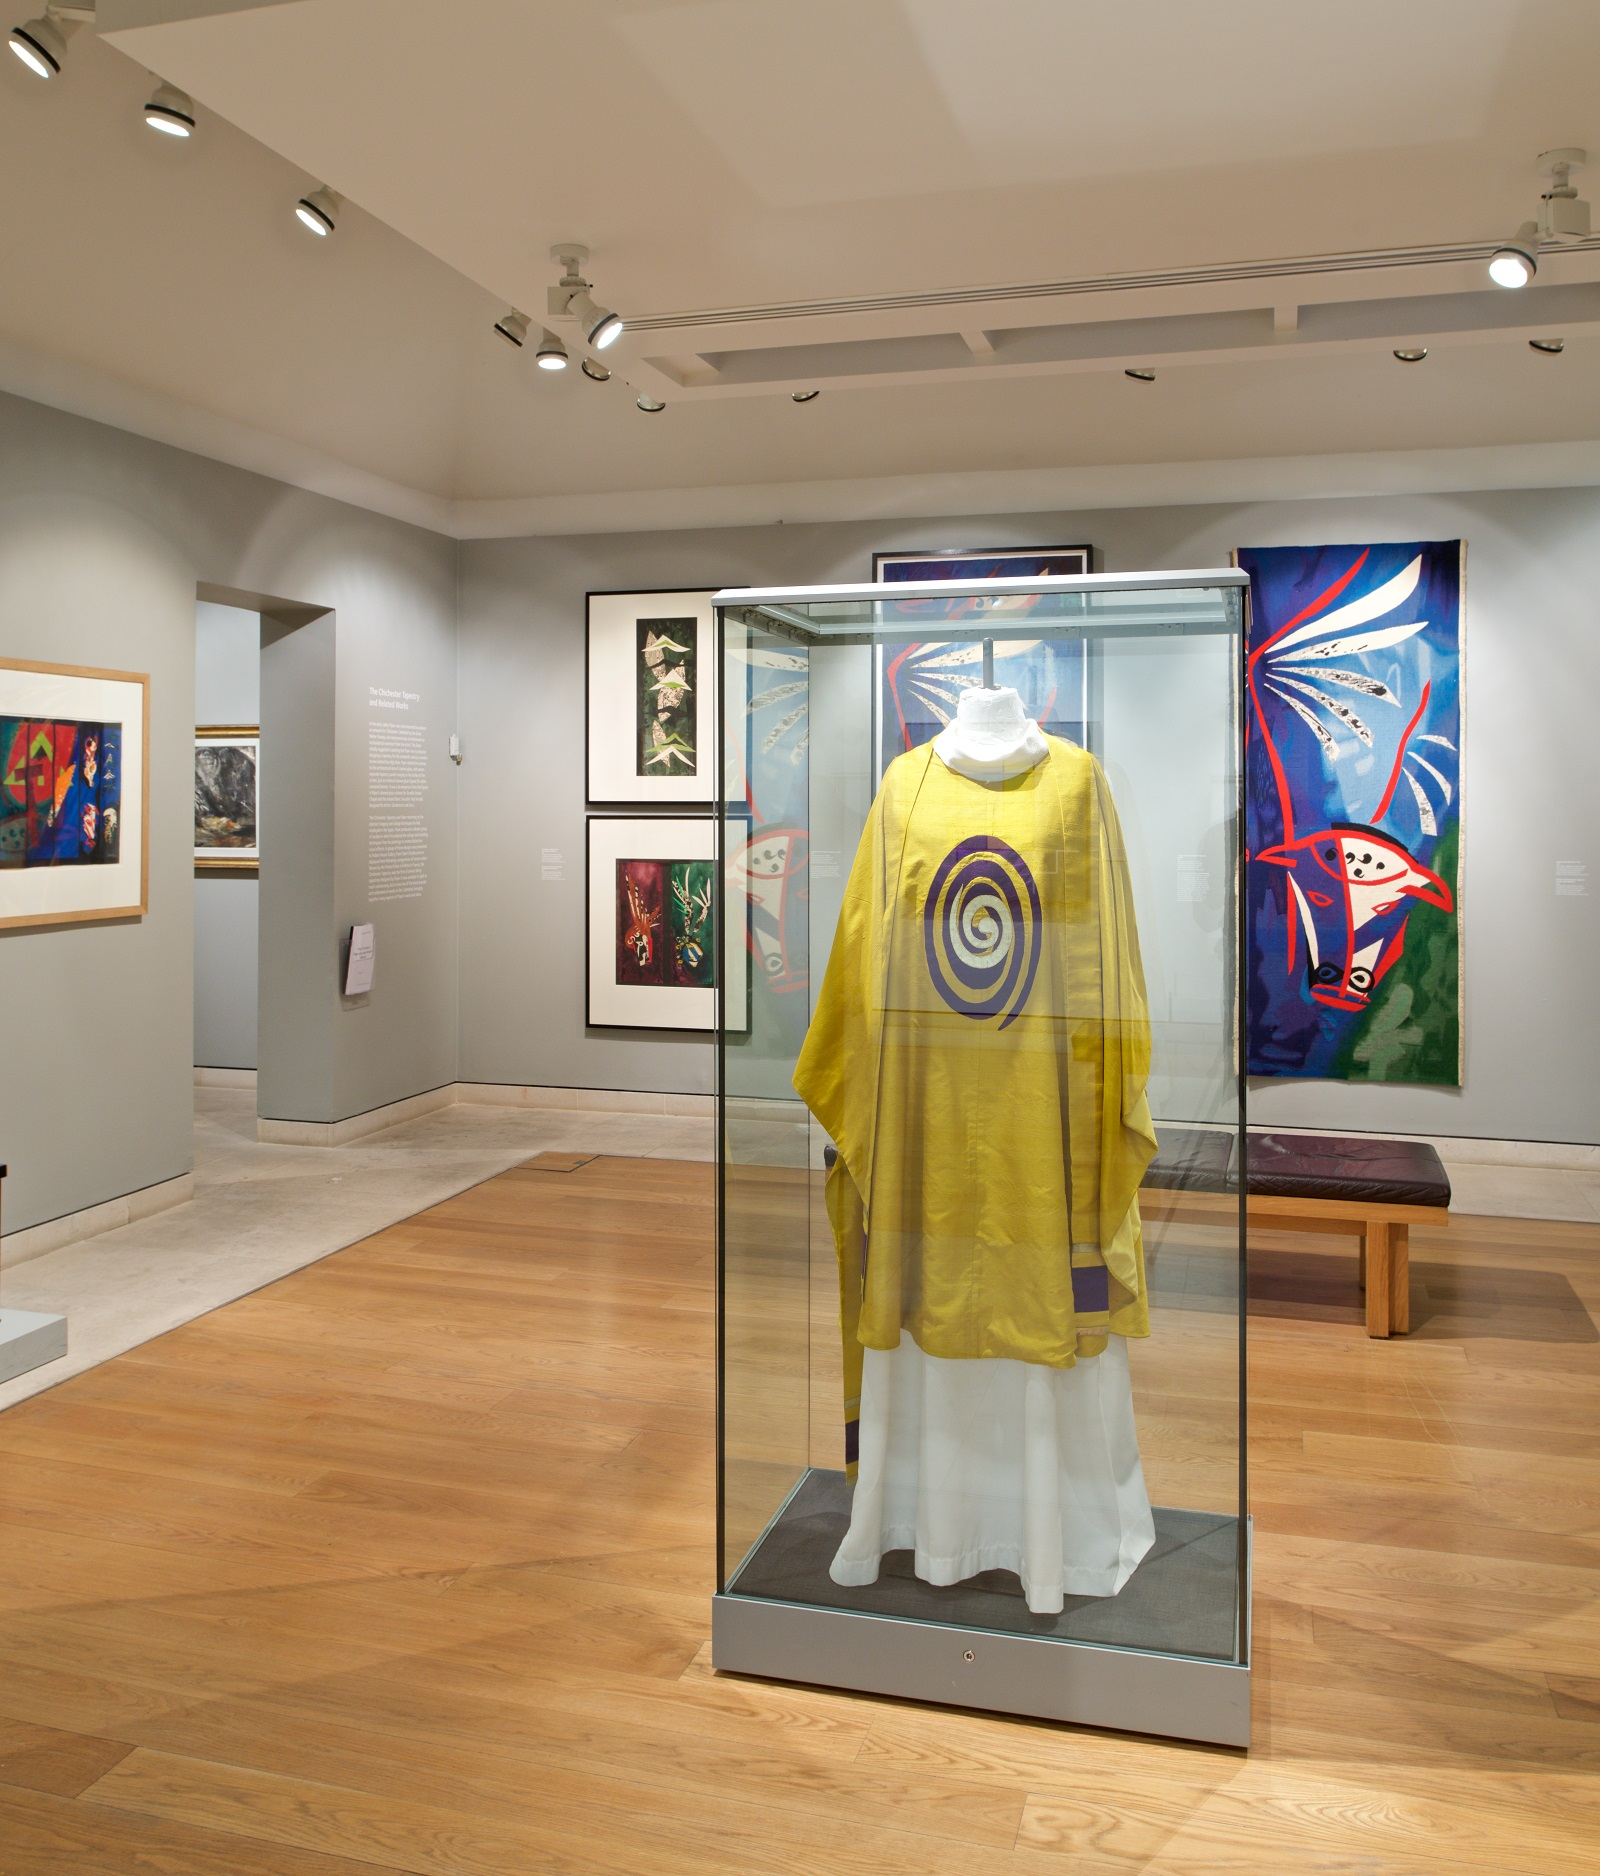 View of gallery showing abstract works of art on the wall. In the centre is a glass case containing a mannequin wearing a yellow vestement with abstract oval design on its chest